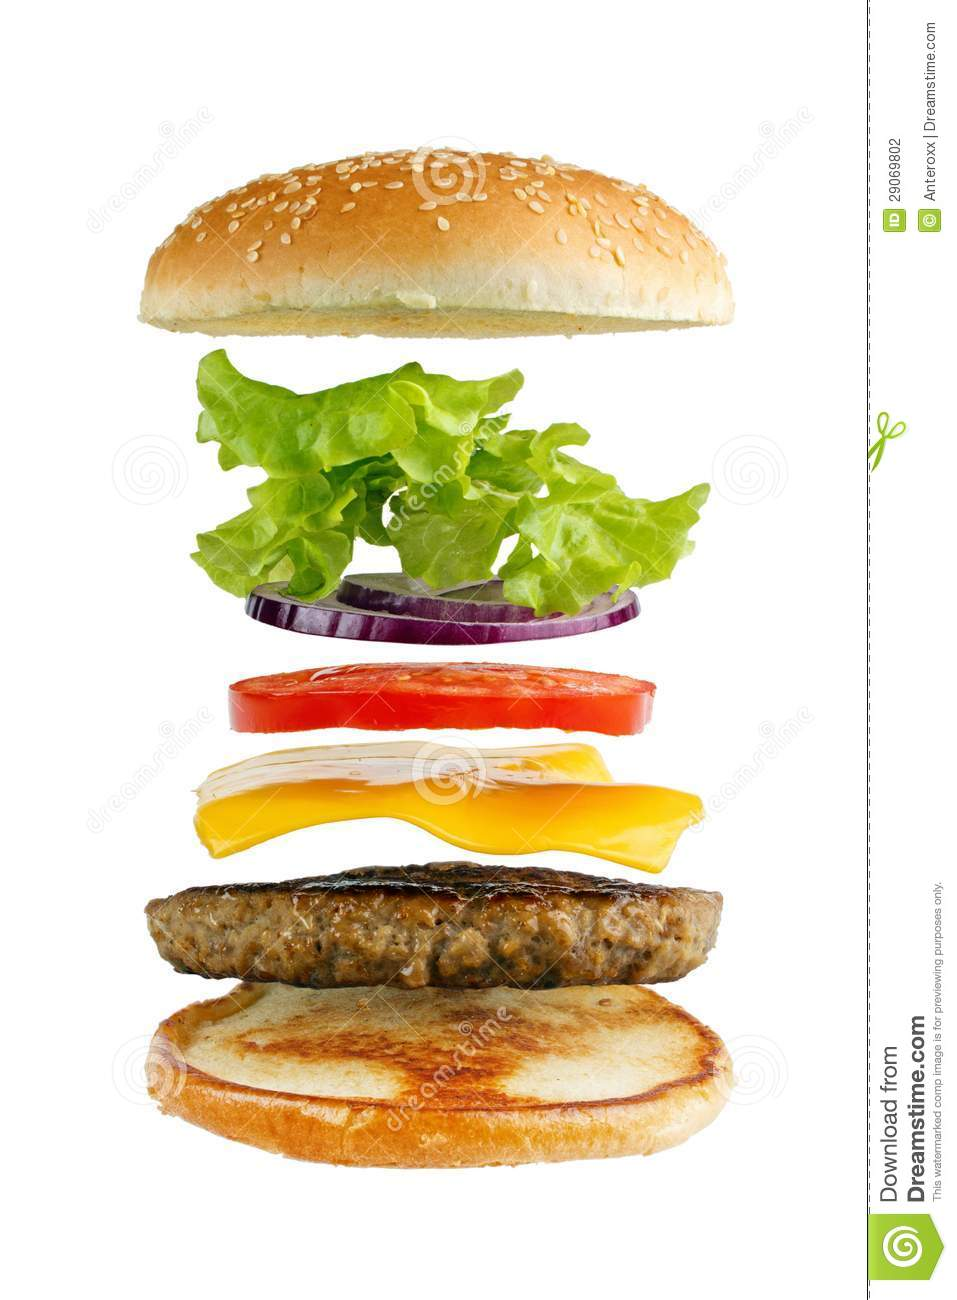 Hamburger Ingredients Stock Photography - Image: 29069802